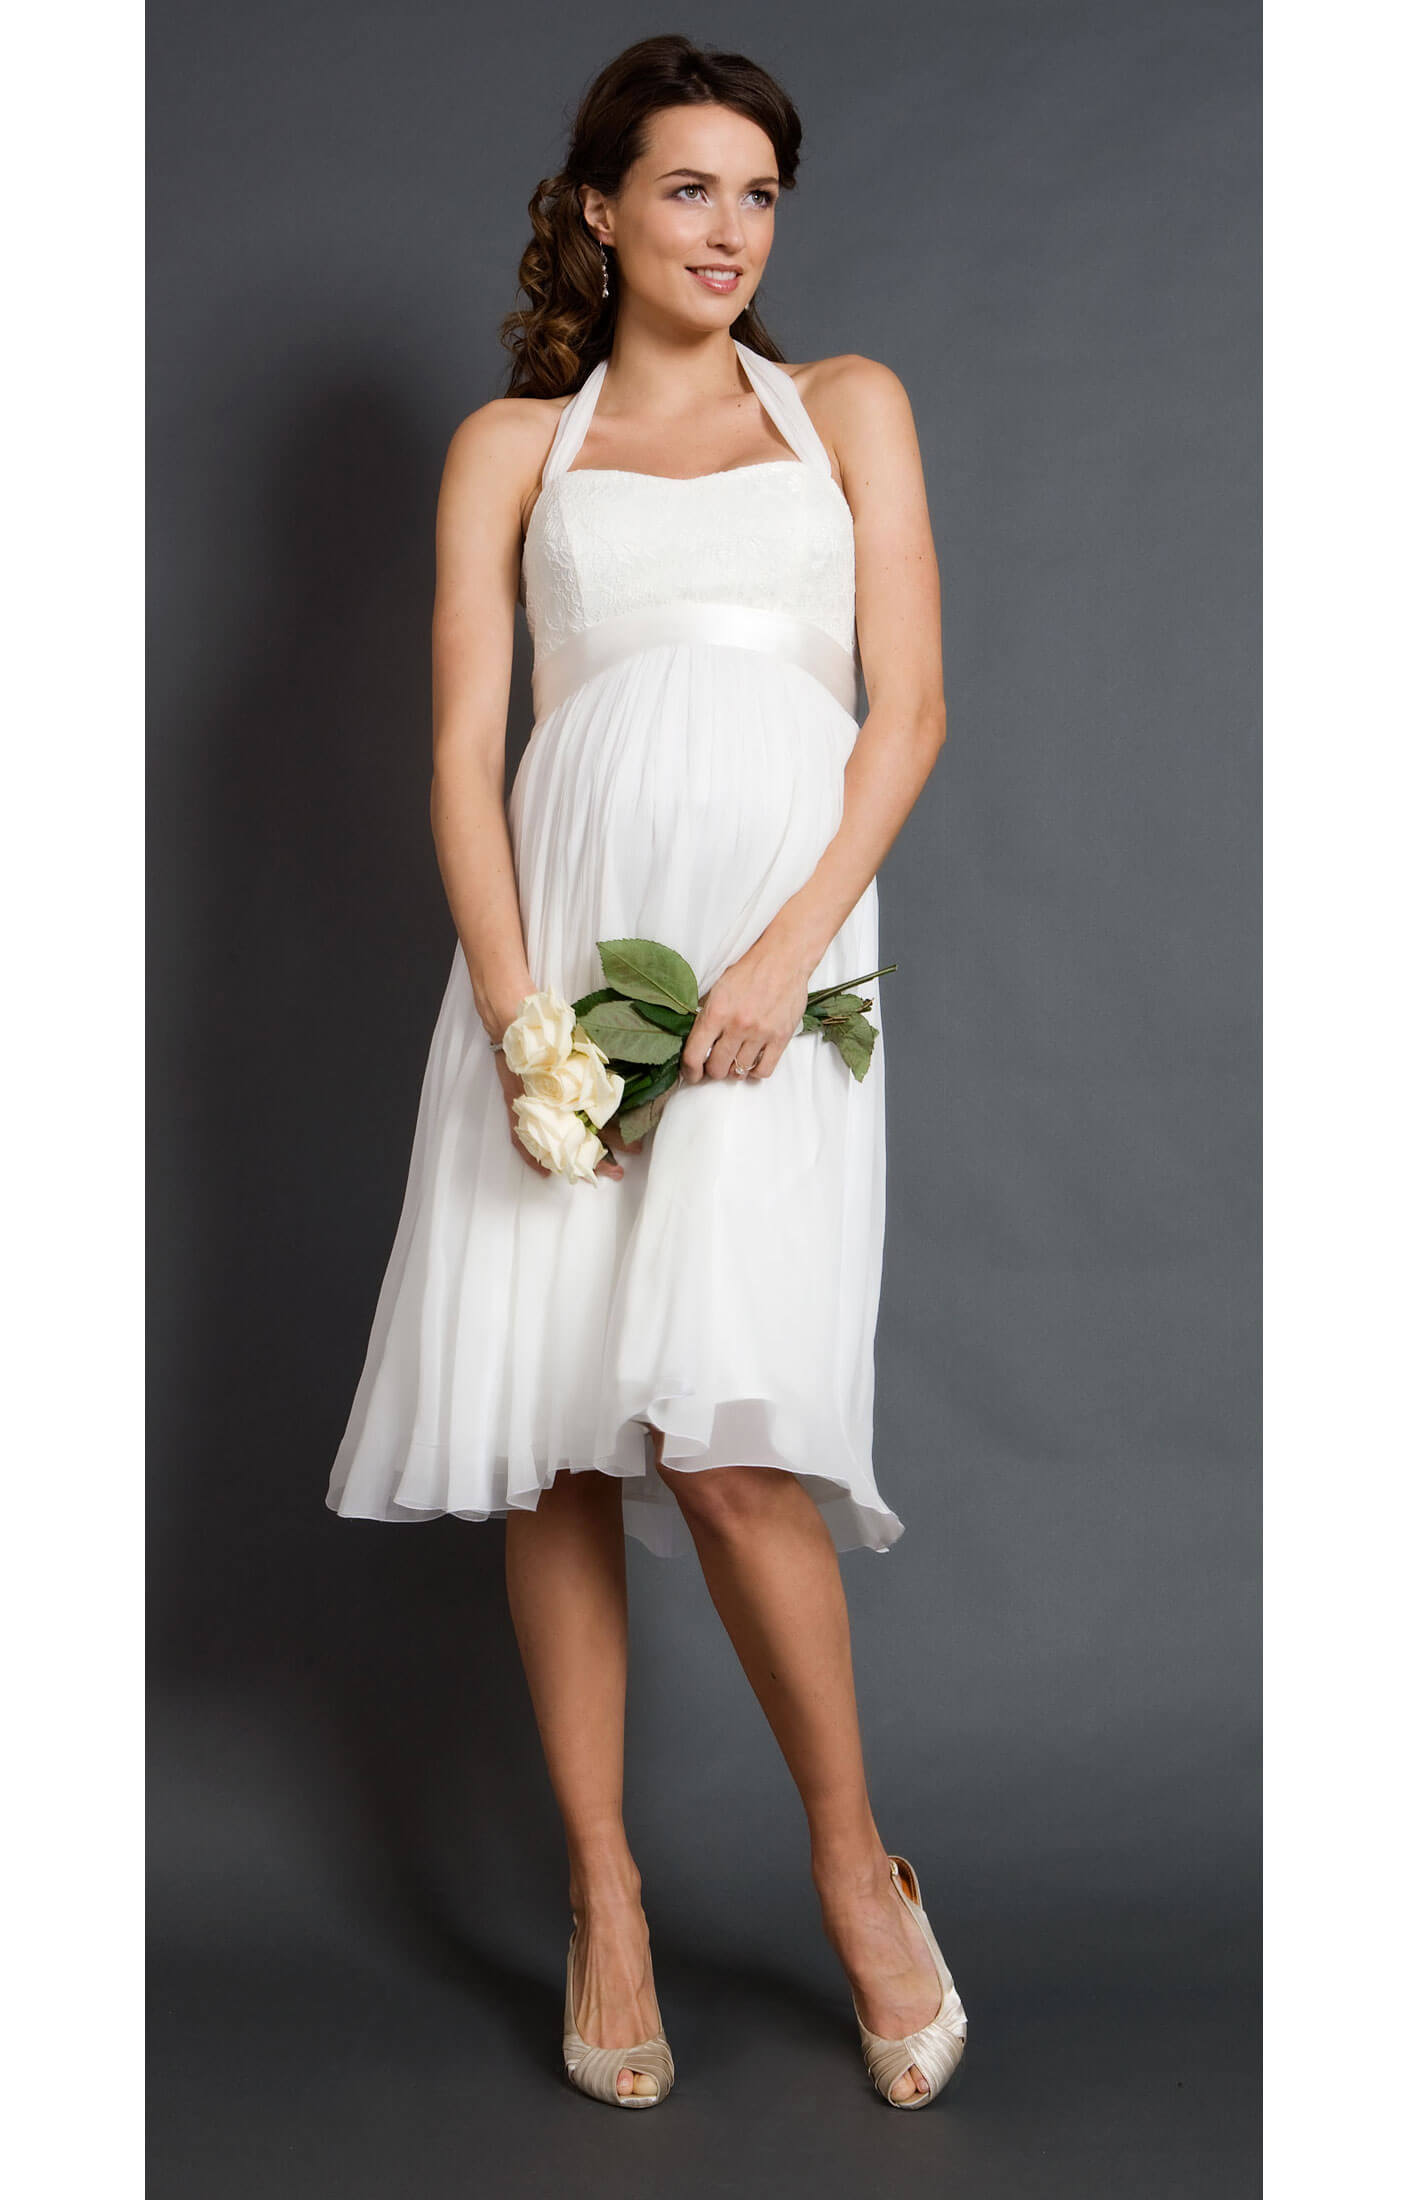 Maternity wedding dresses hairstyles and fashion for Pregnancy dress for wedding